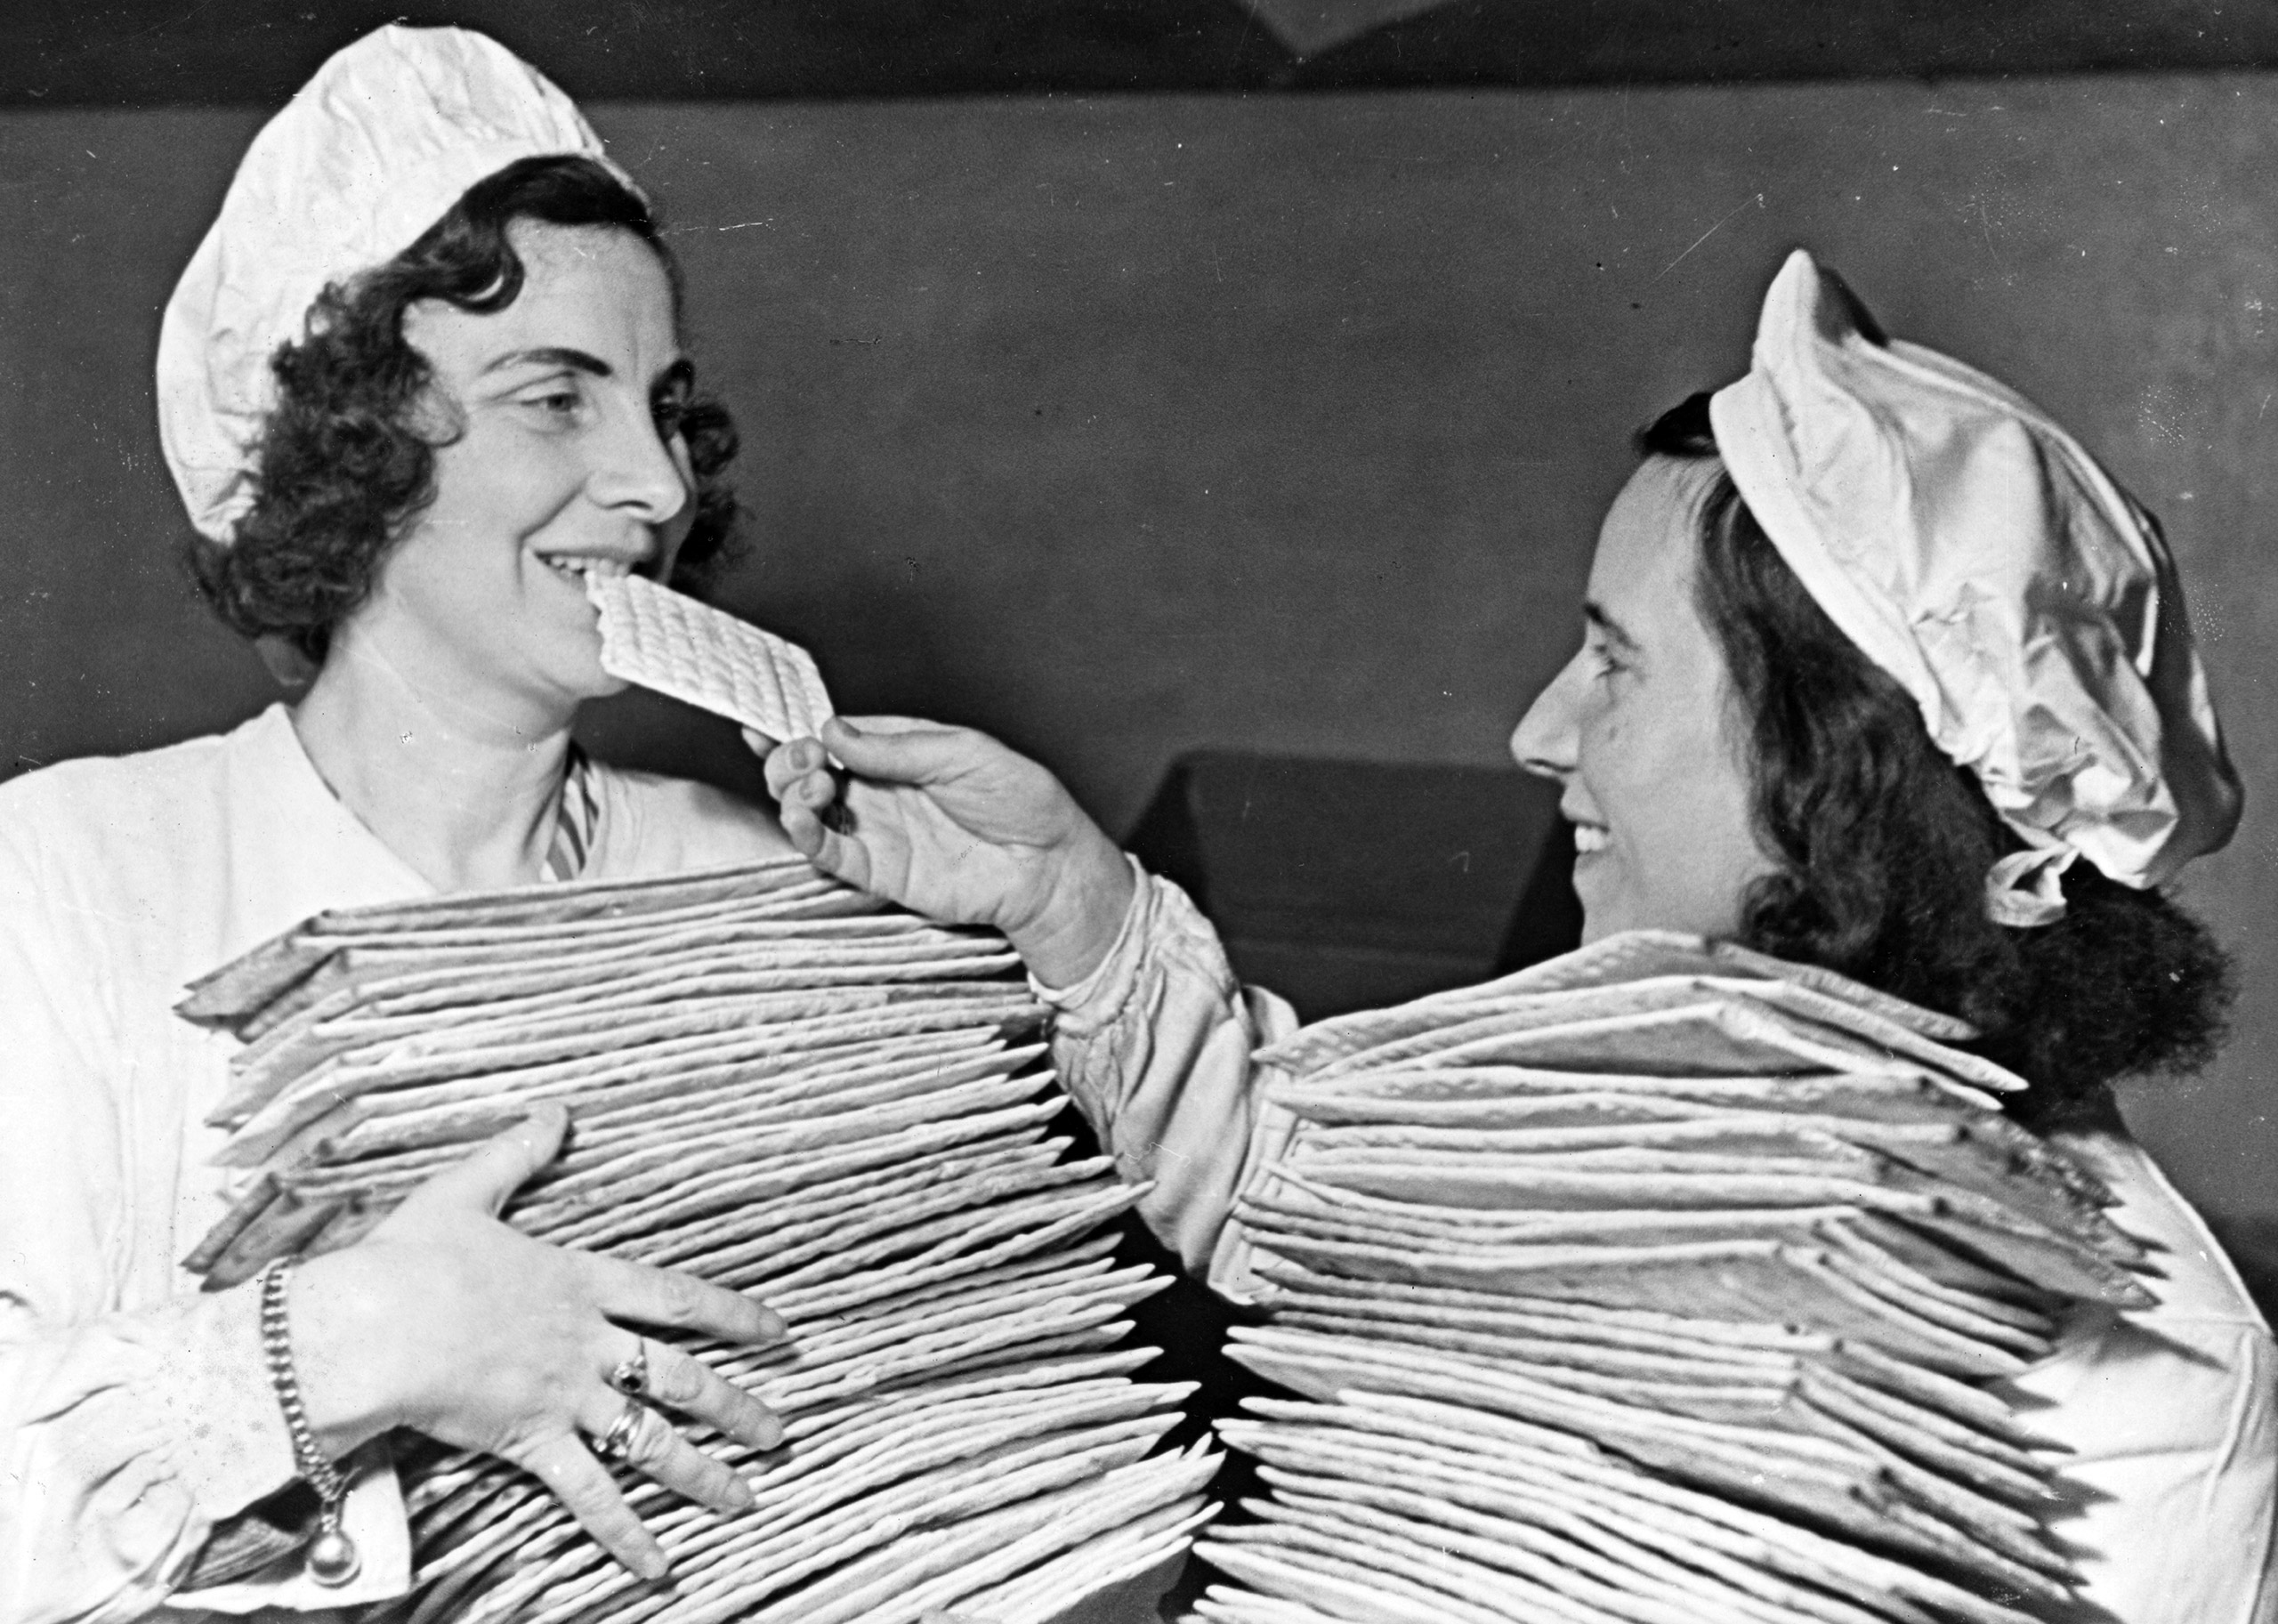 Two young women in the Sarotti Fabrik Bakery, where a goal of 85,000 pounds of matzo for Passover was set after a 10 year closure by official edict. Berlin, Germany, 1946. Photographer unknown.